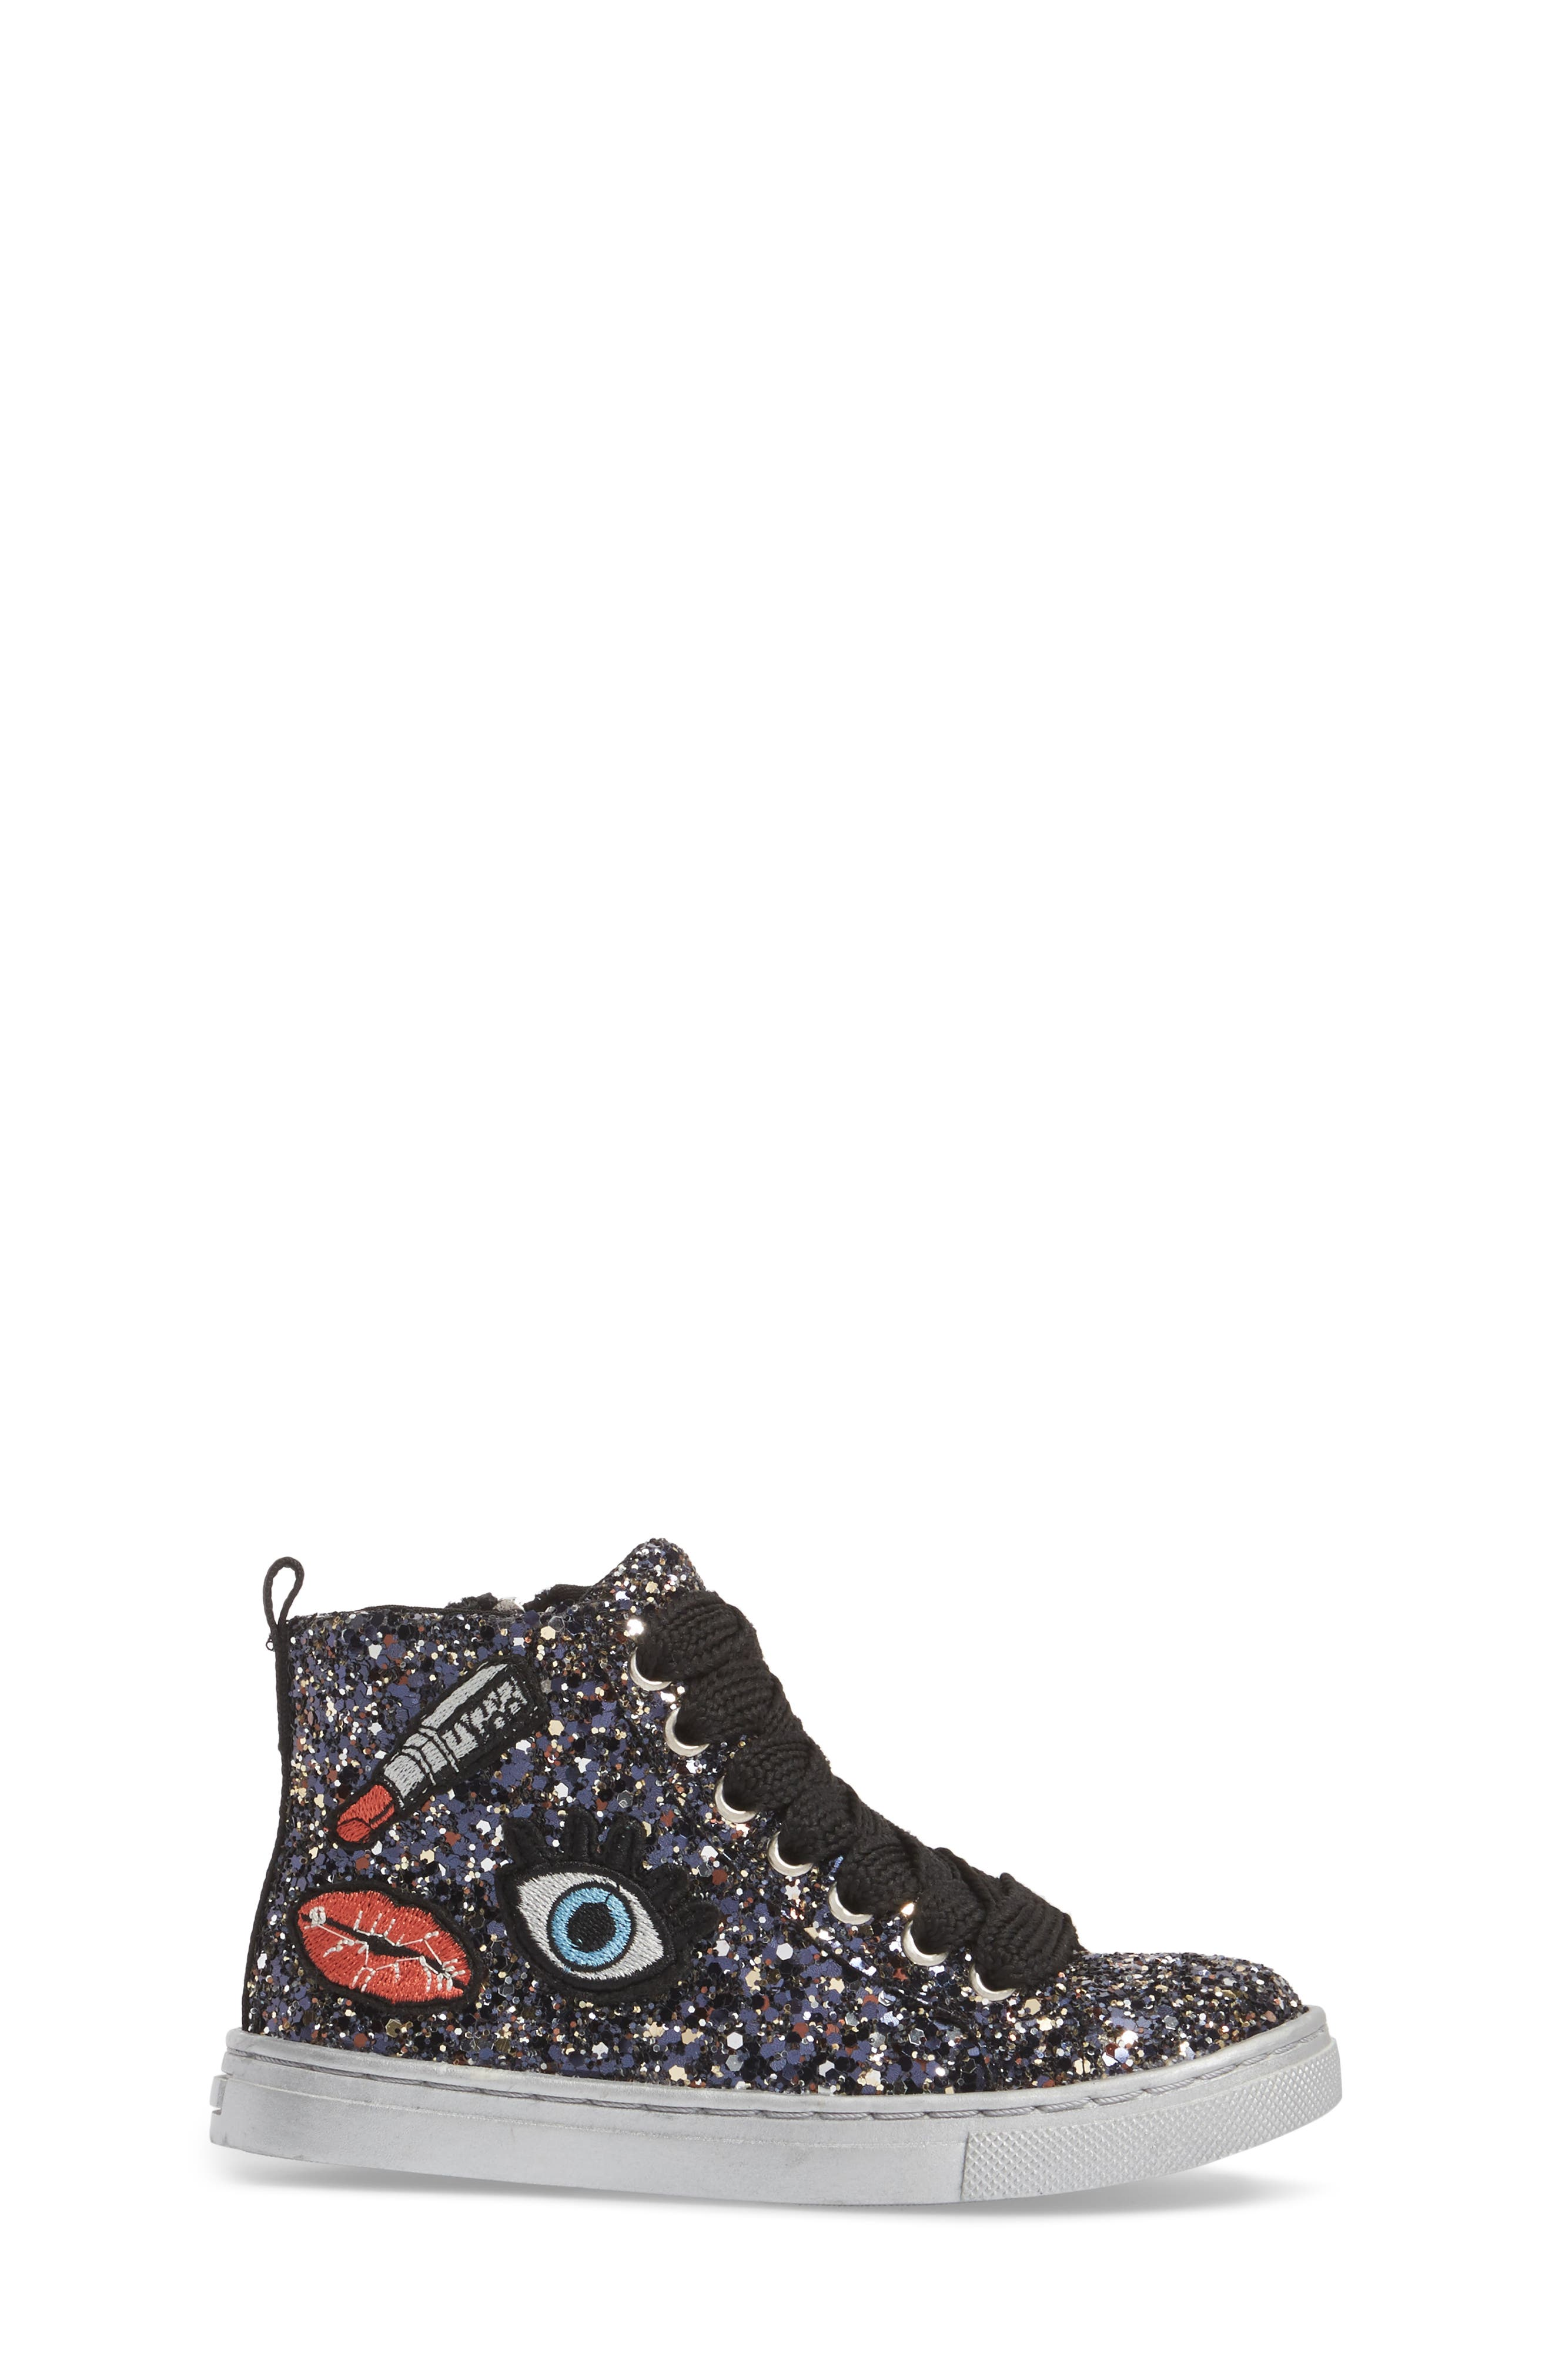 Zaine Glittery High Top Sneaker,                             Alternate thumbnail 3, color,                             001